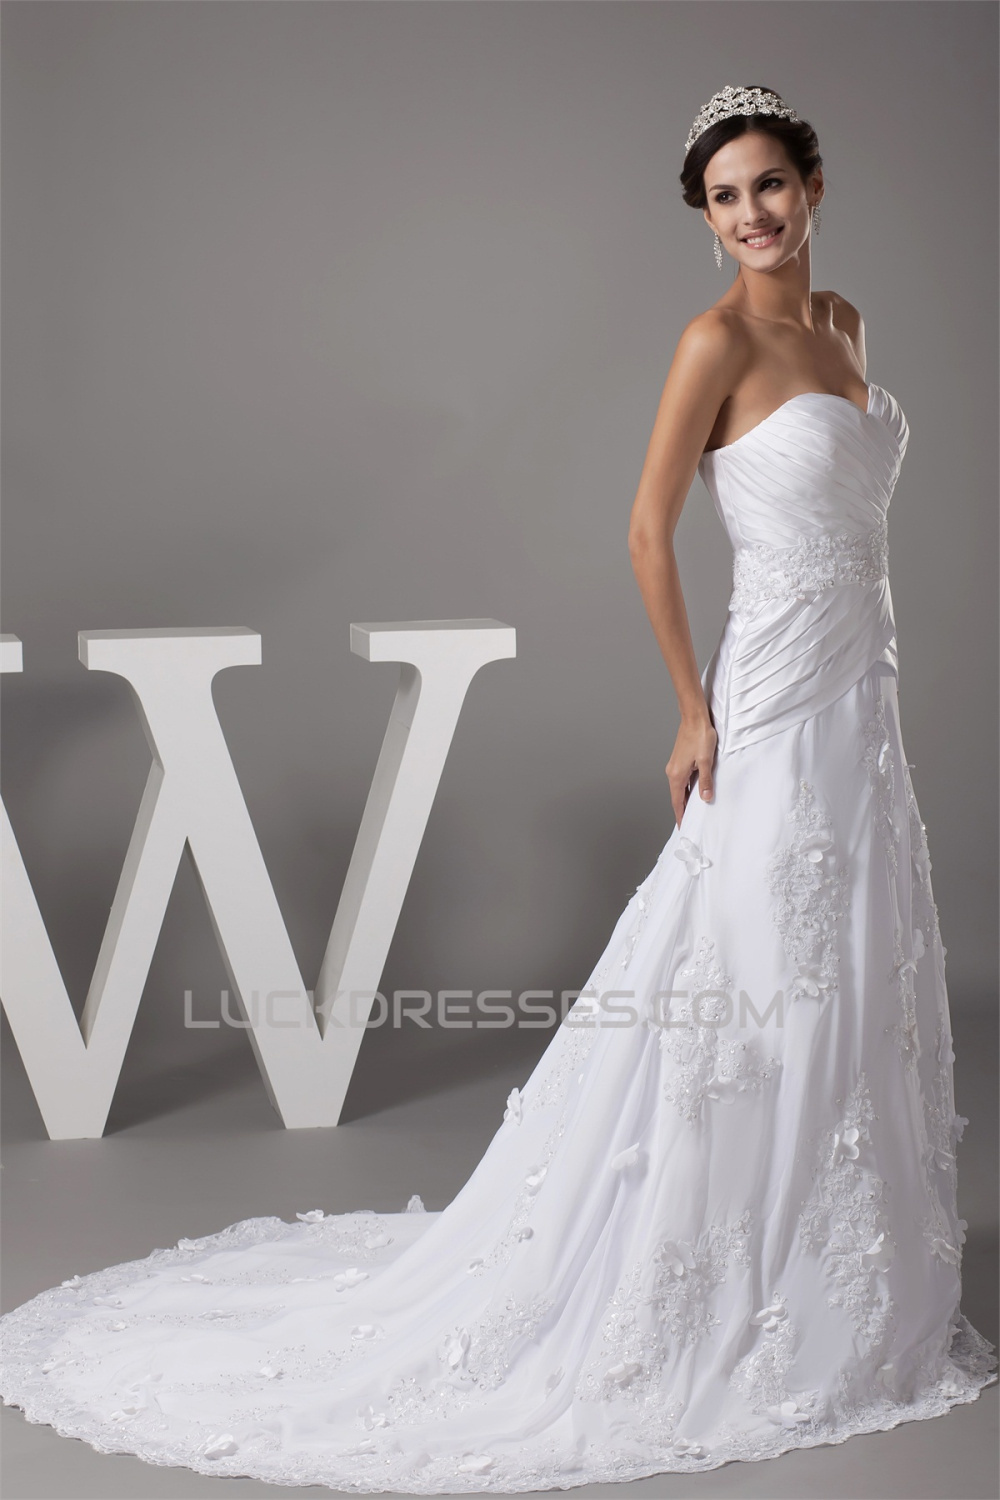 A Line Sweetheart Chiffon Satin Lace Beaded Most Beautiful